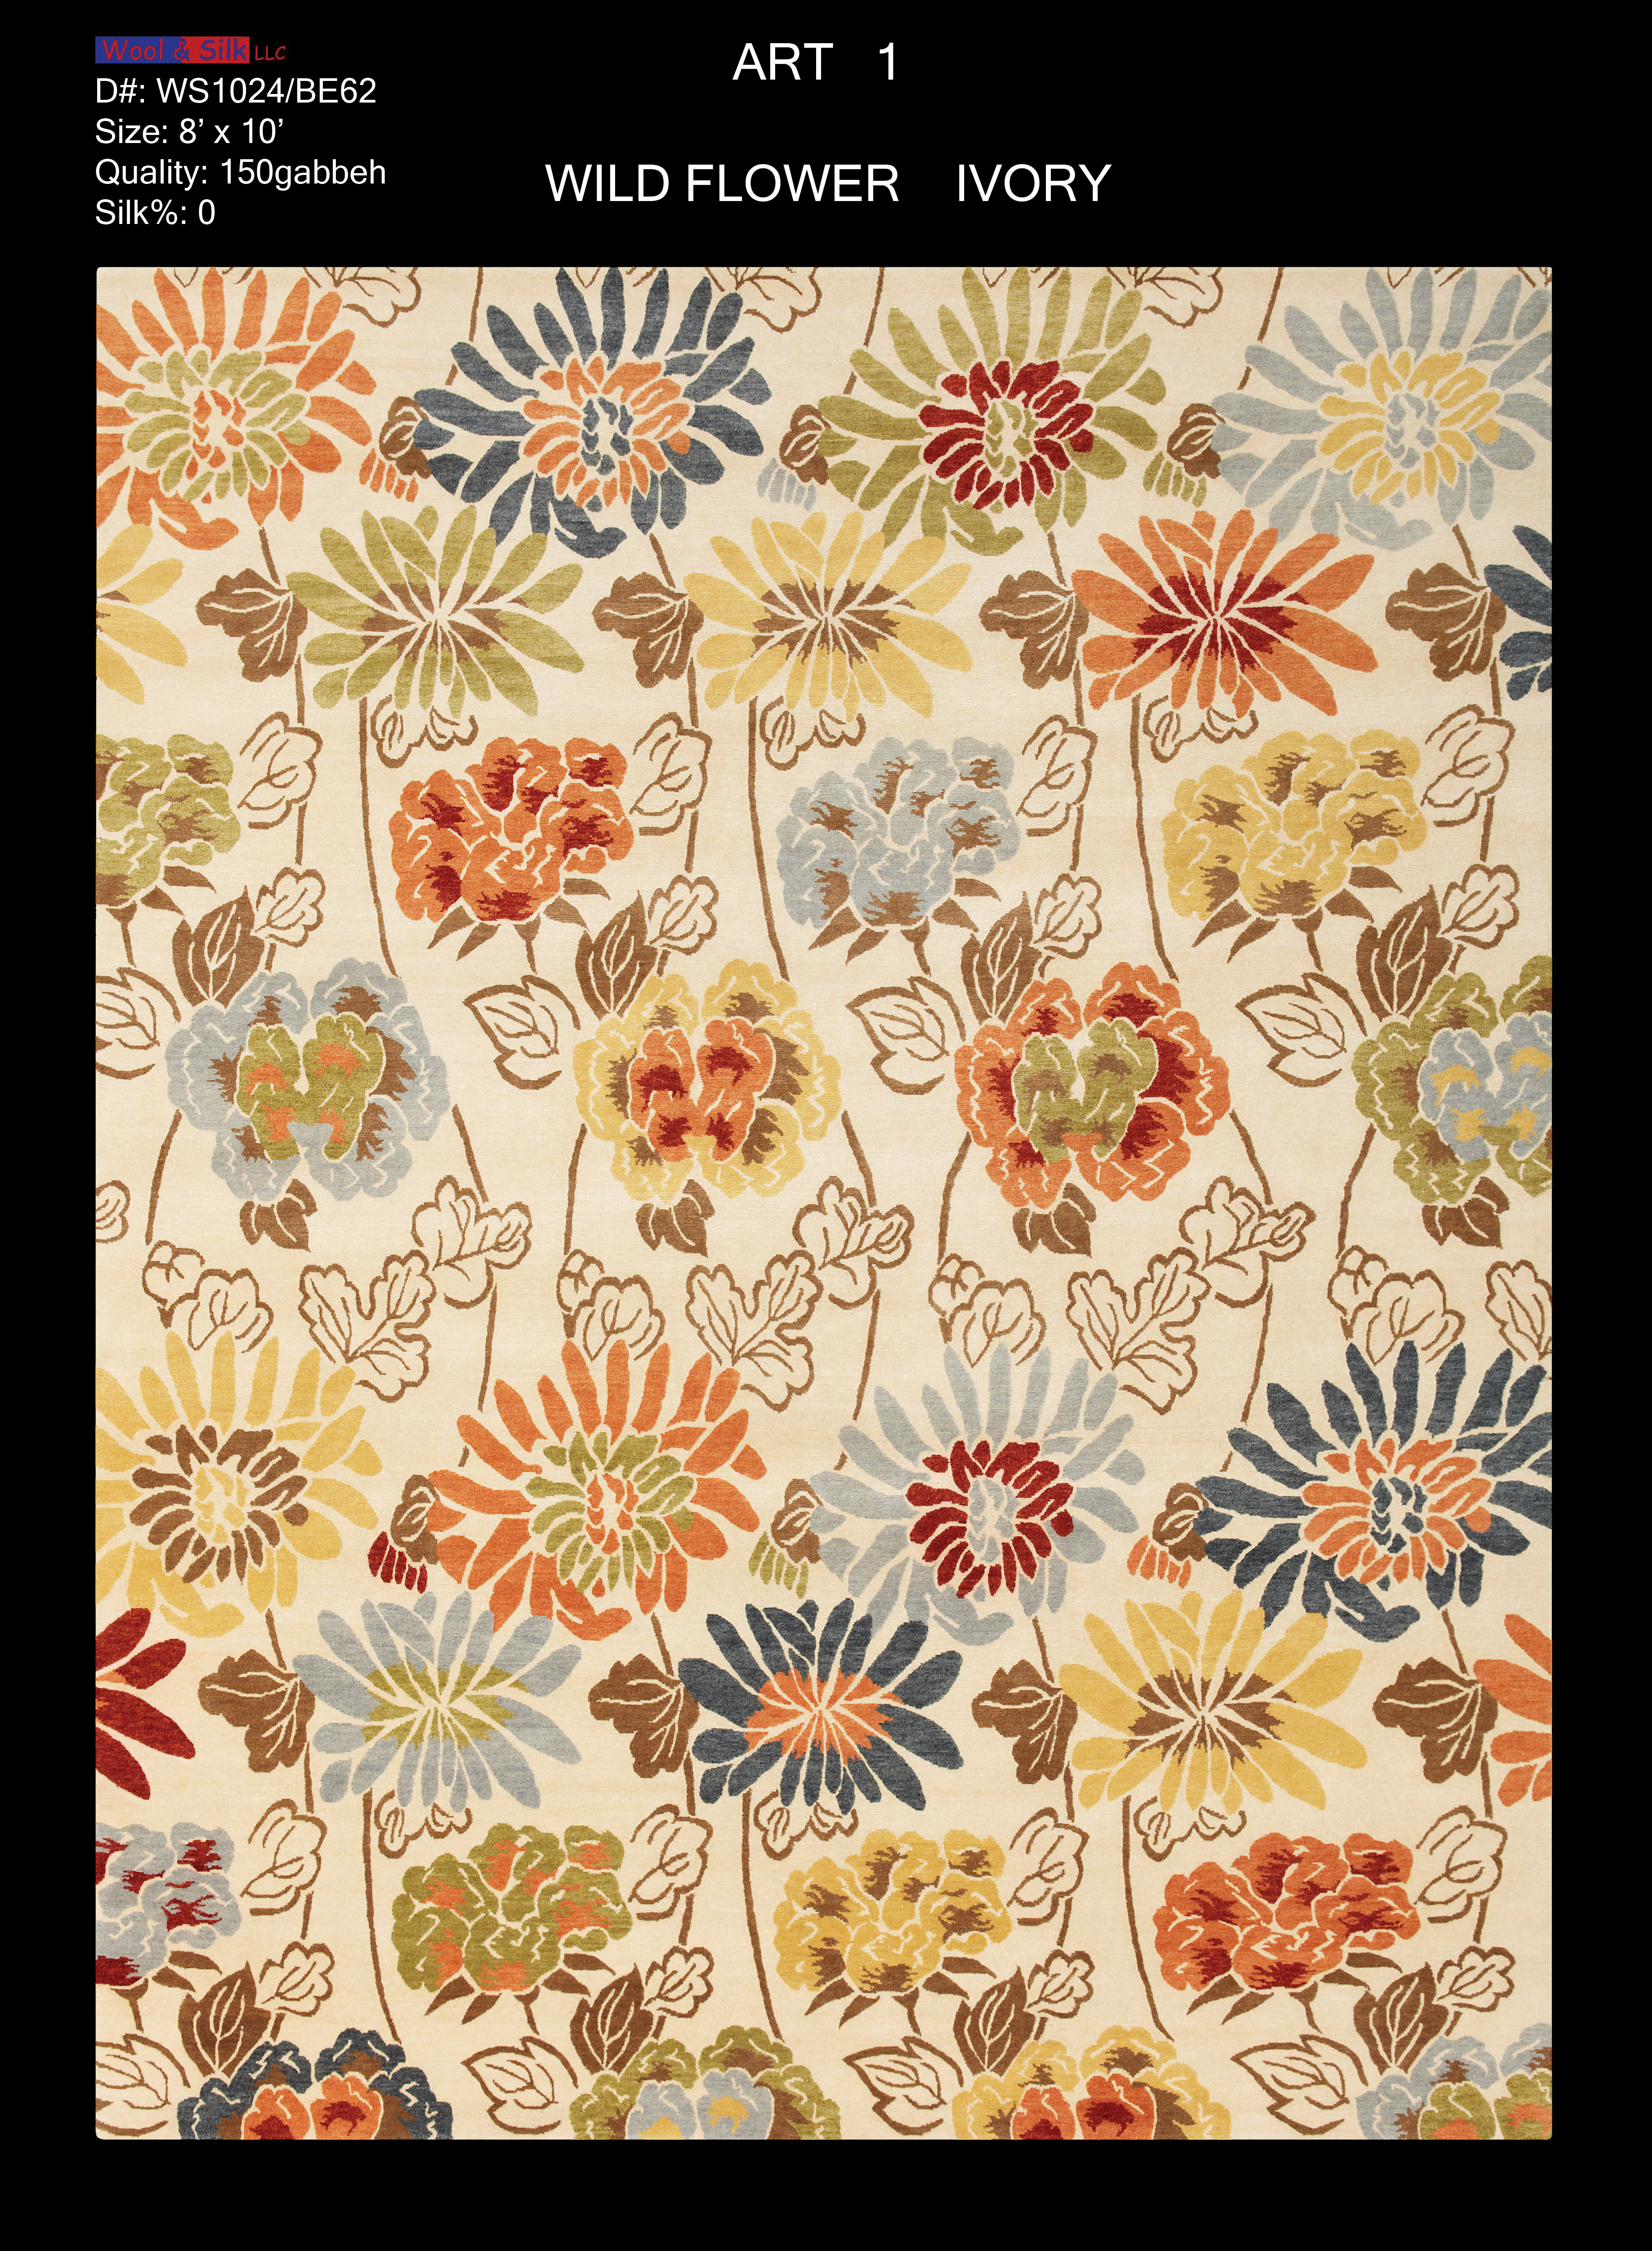 Wild Flower-Ivory(WS1024-BE62) 8'x10'